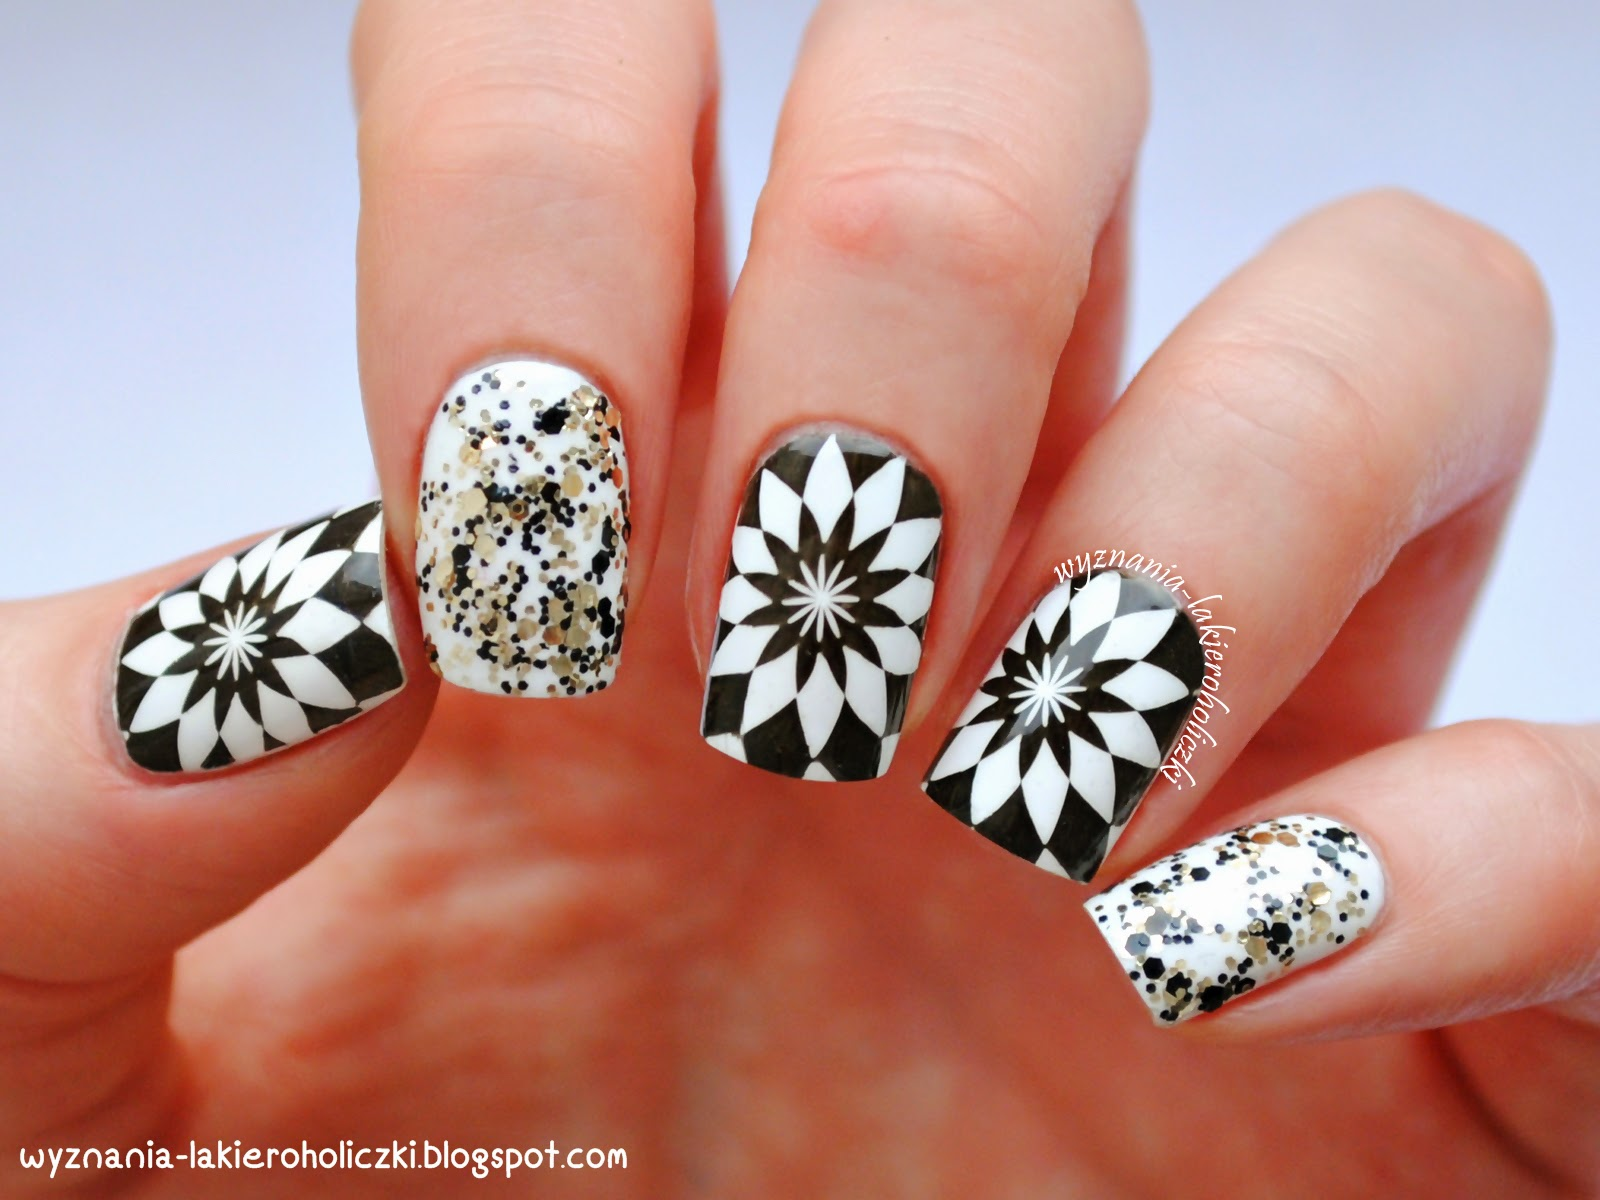 Most amazing nail art designs most amazing nail art designs extreme nail art the most beautiful nails you have ever prinsesfo Gallery